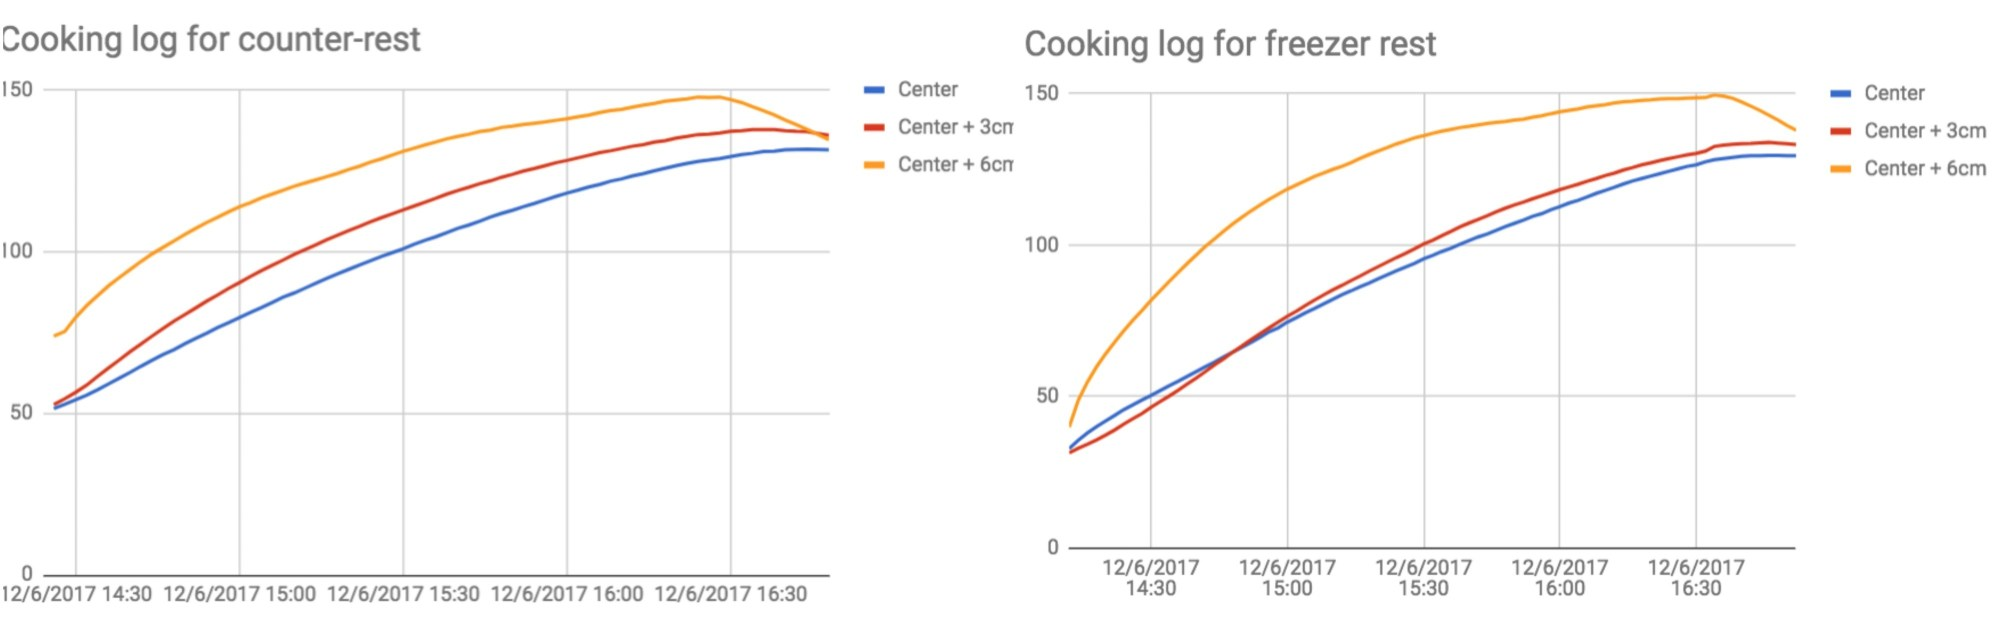 hight resolution of logs of the cooking temperatures for both methods